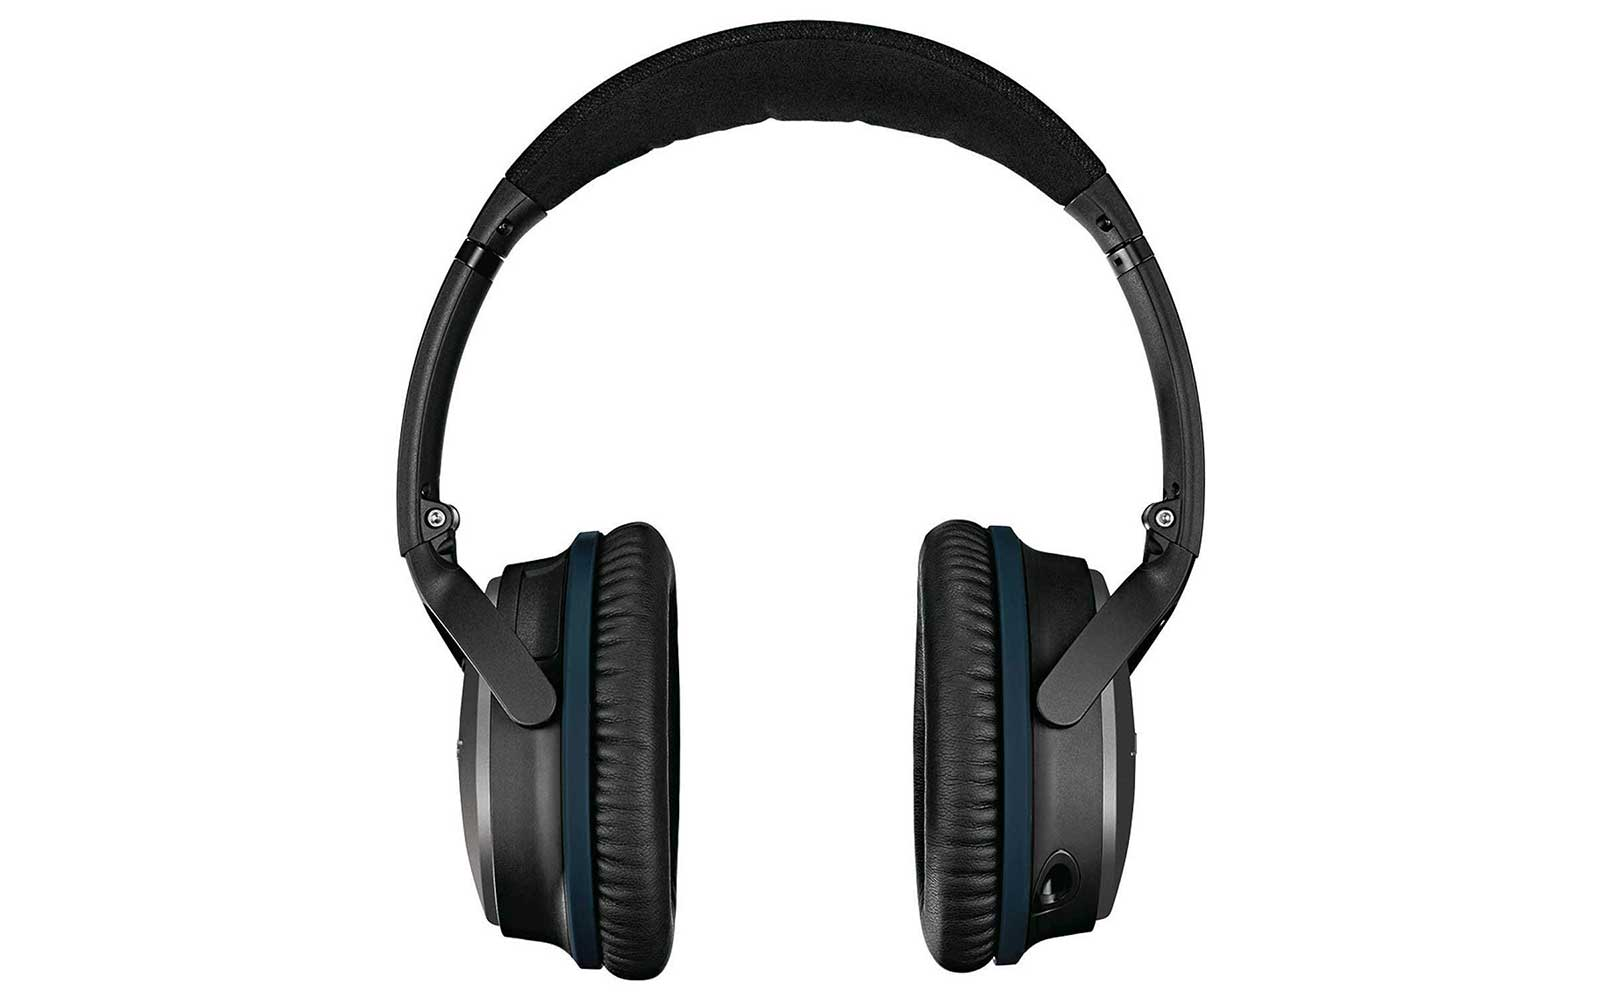 Bose headphones for sale on Amazon